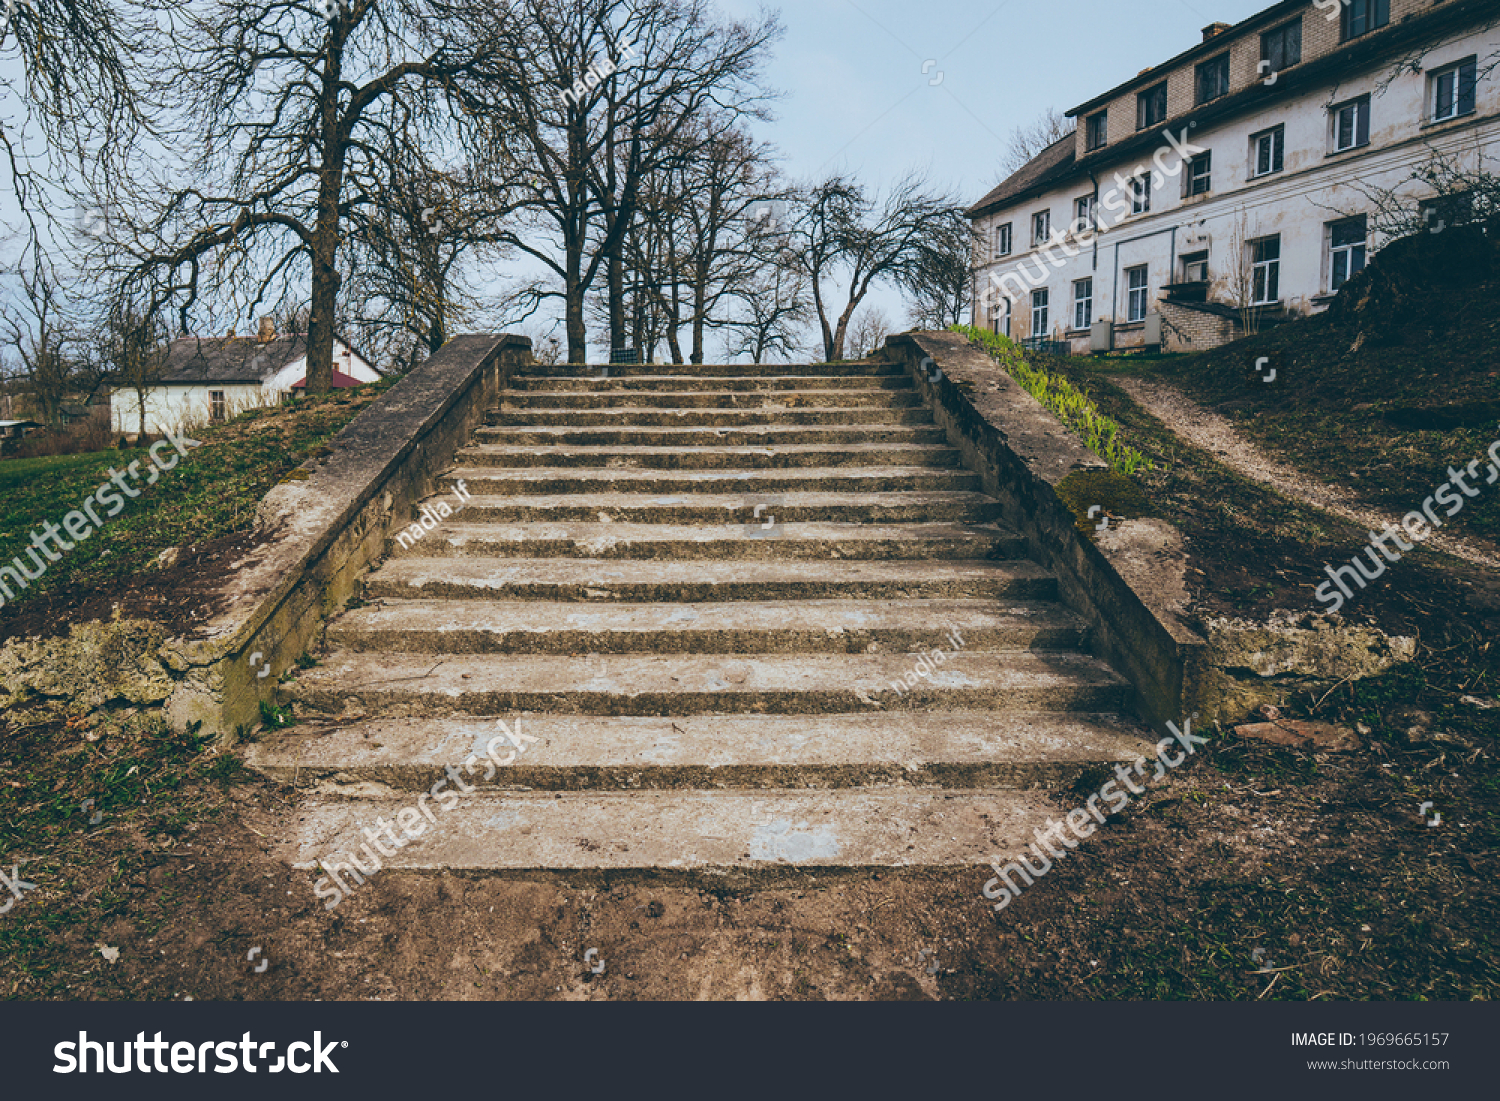 Park landscape. Stone paved stairs in park  #1969665157